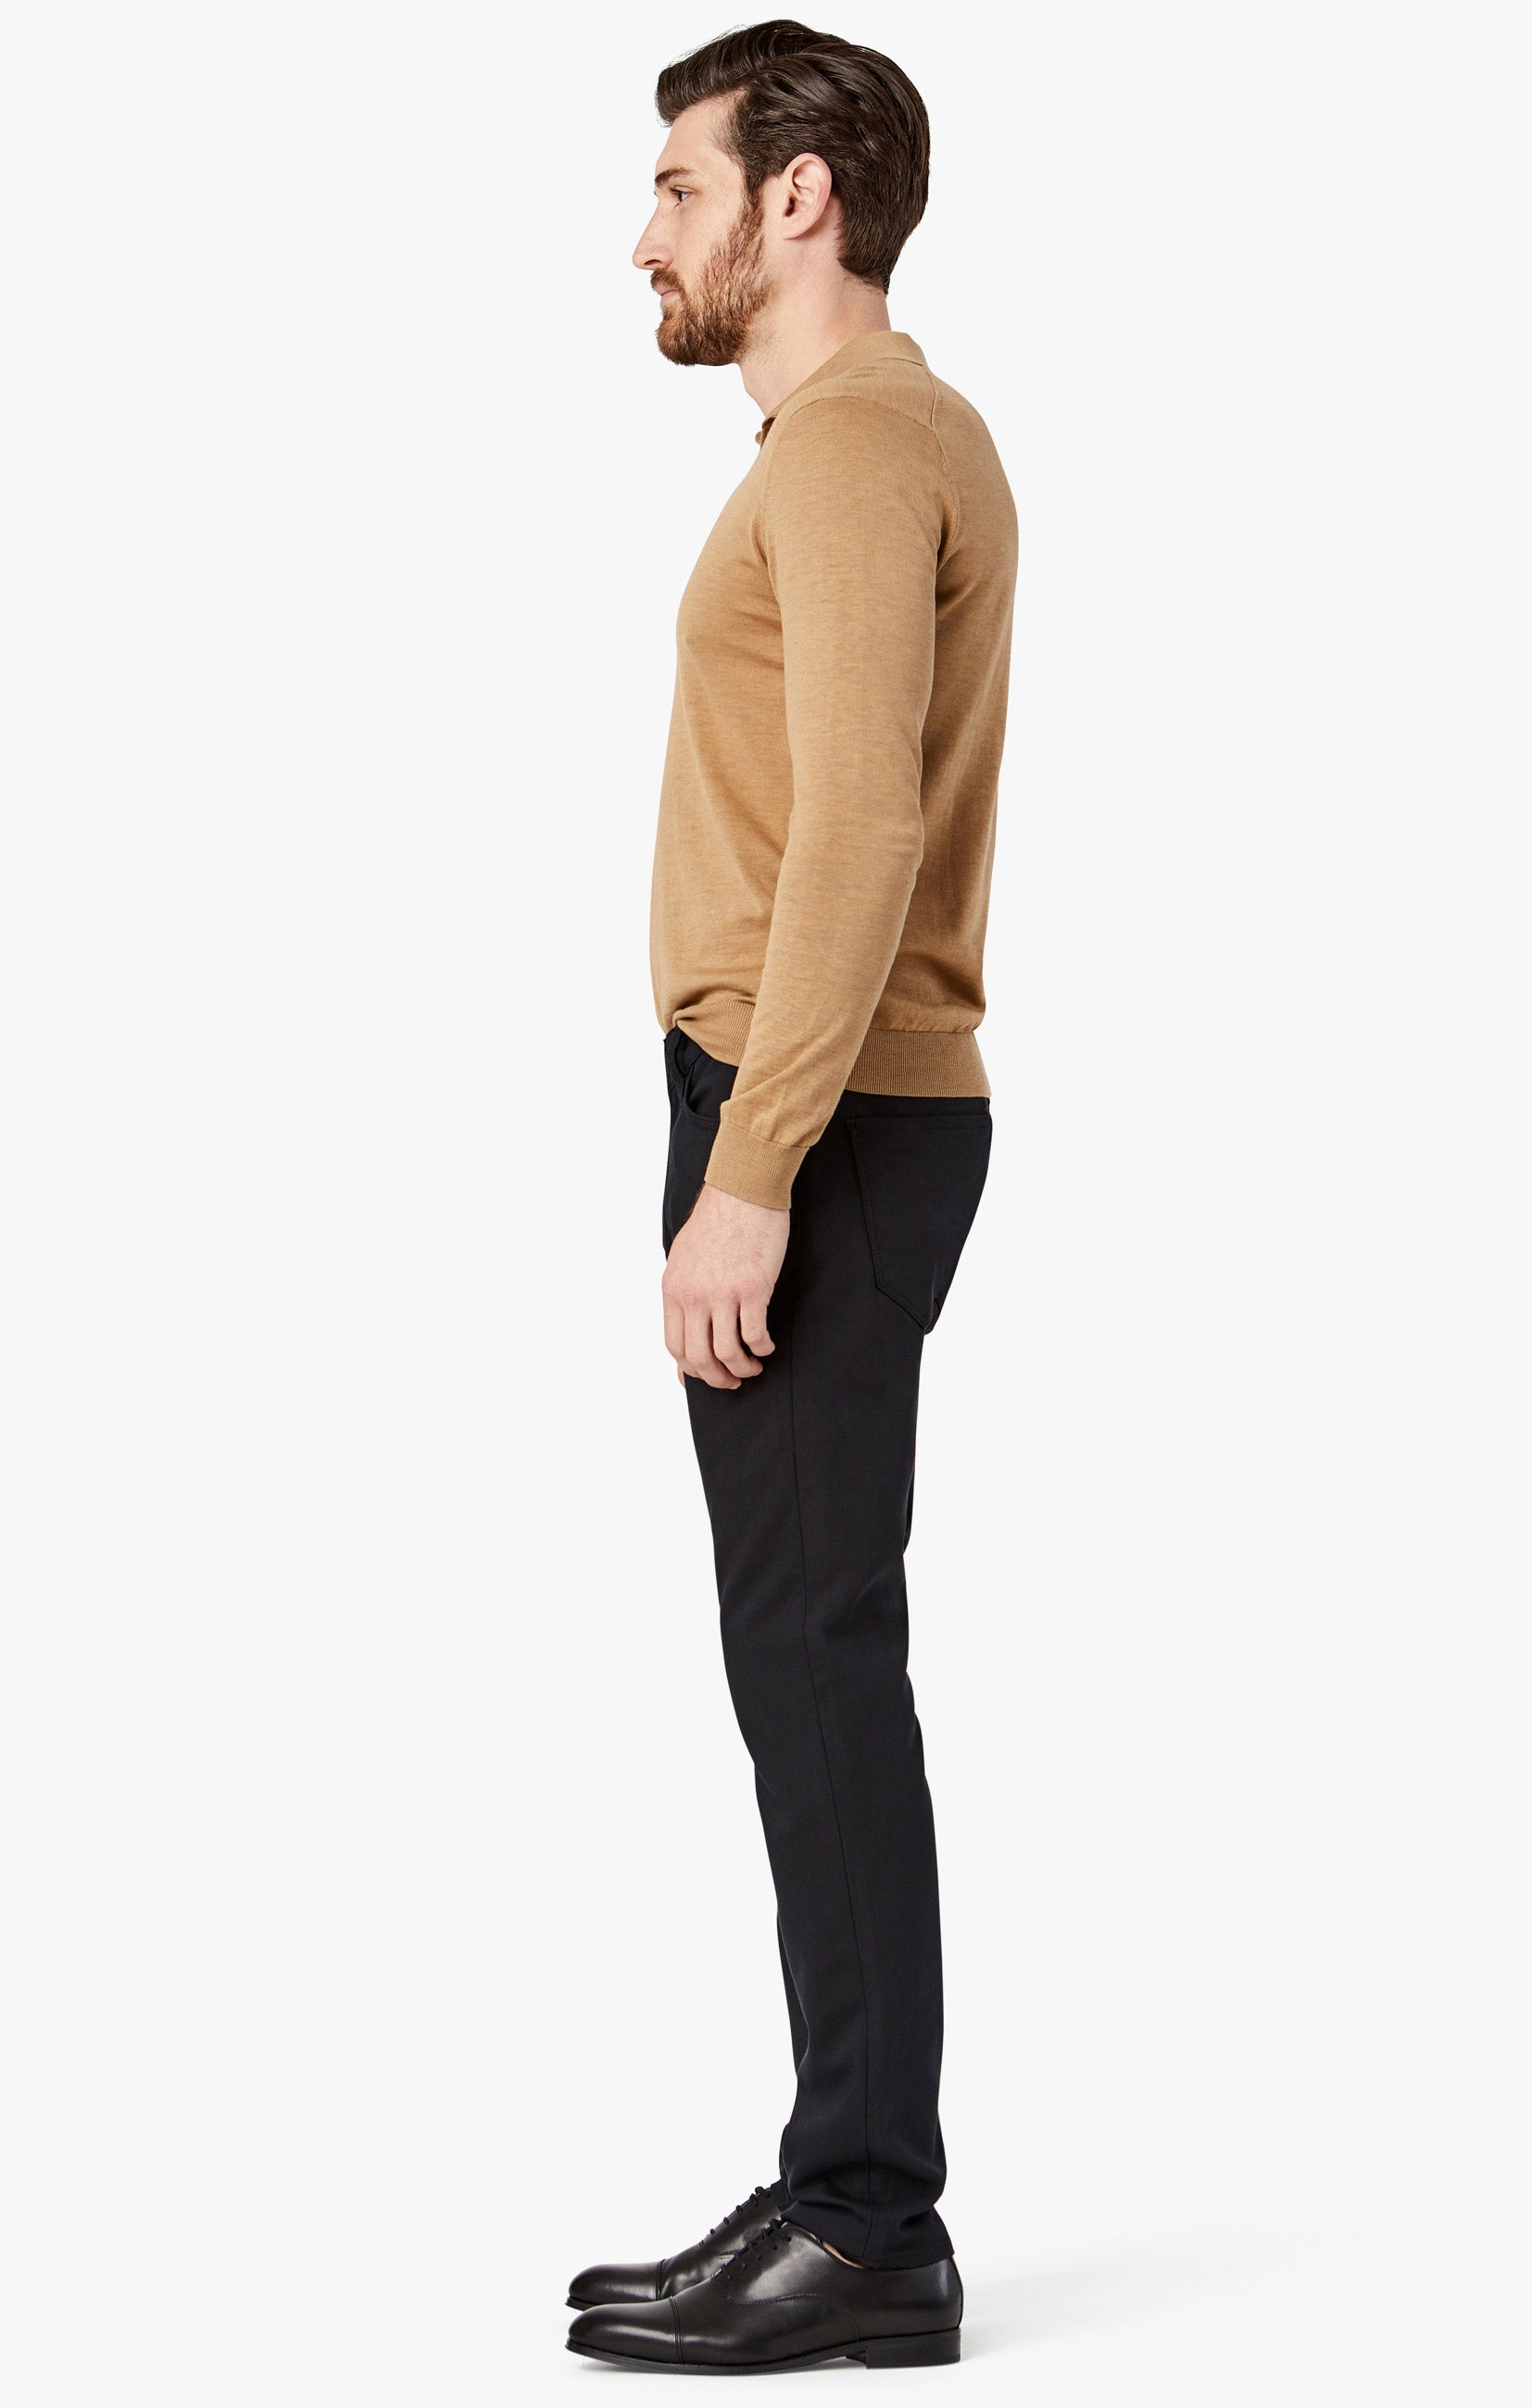 Courage Straight Leg Jeans in Onyx Commuter Image 7